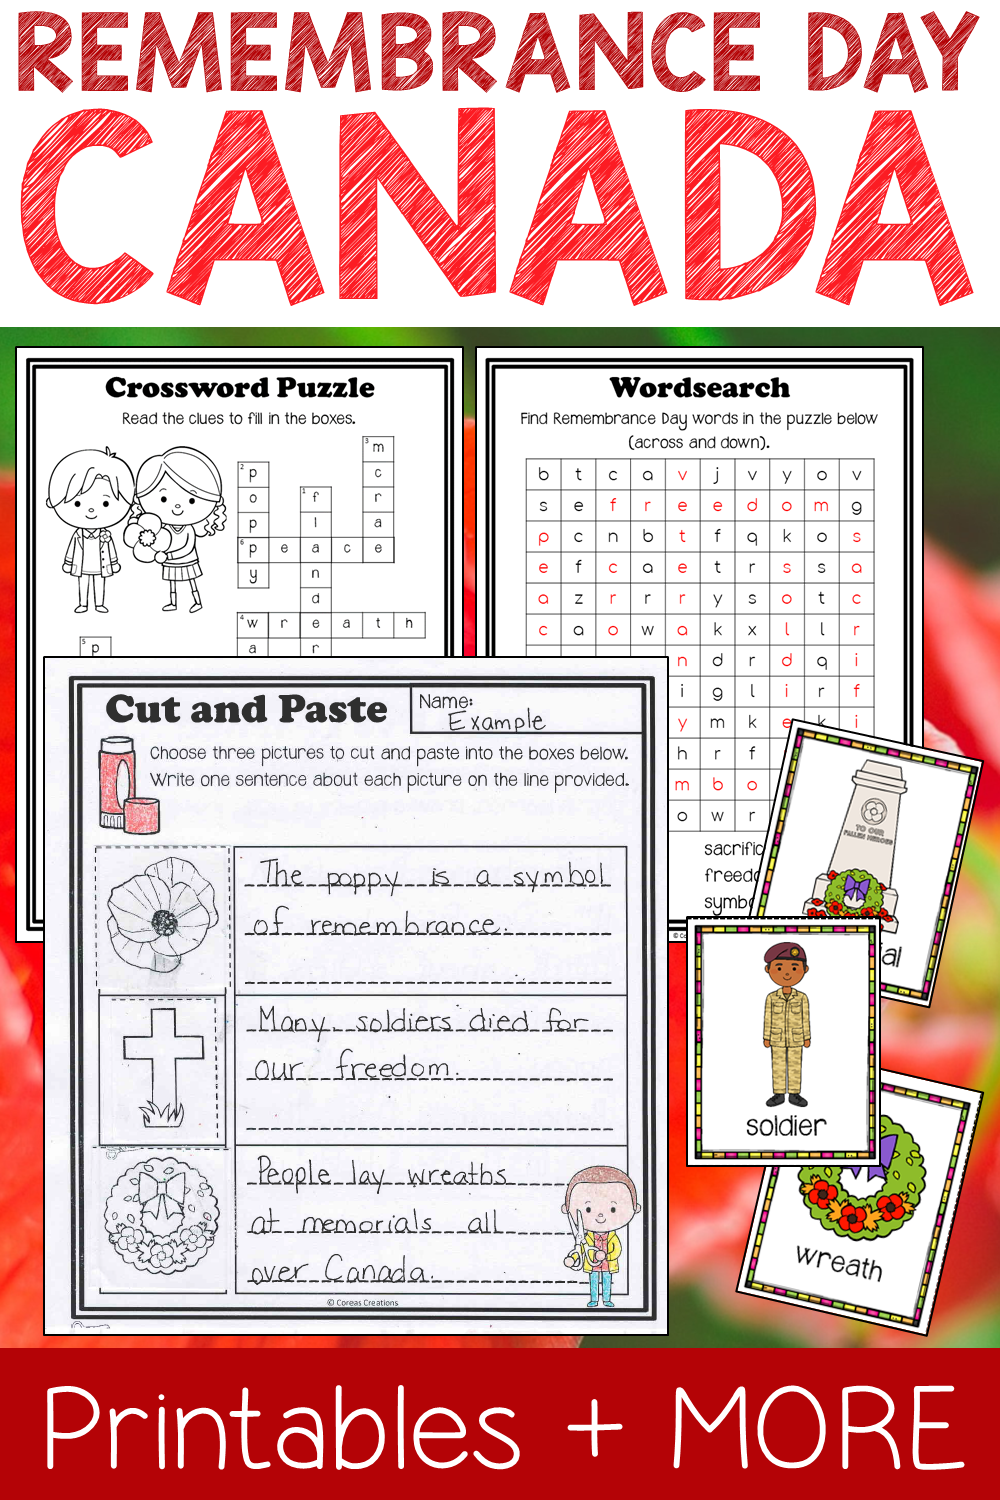 Remembrance Day Canada General Teaching Stuff Pinterest